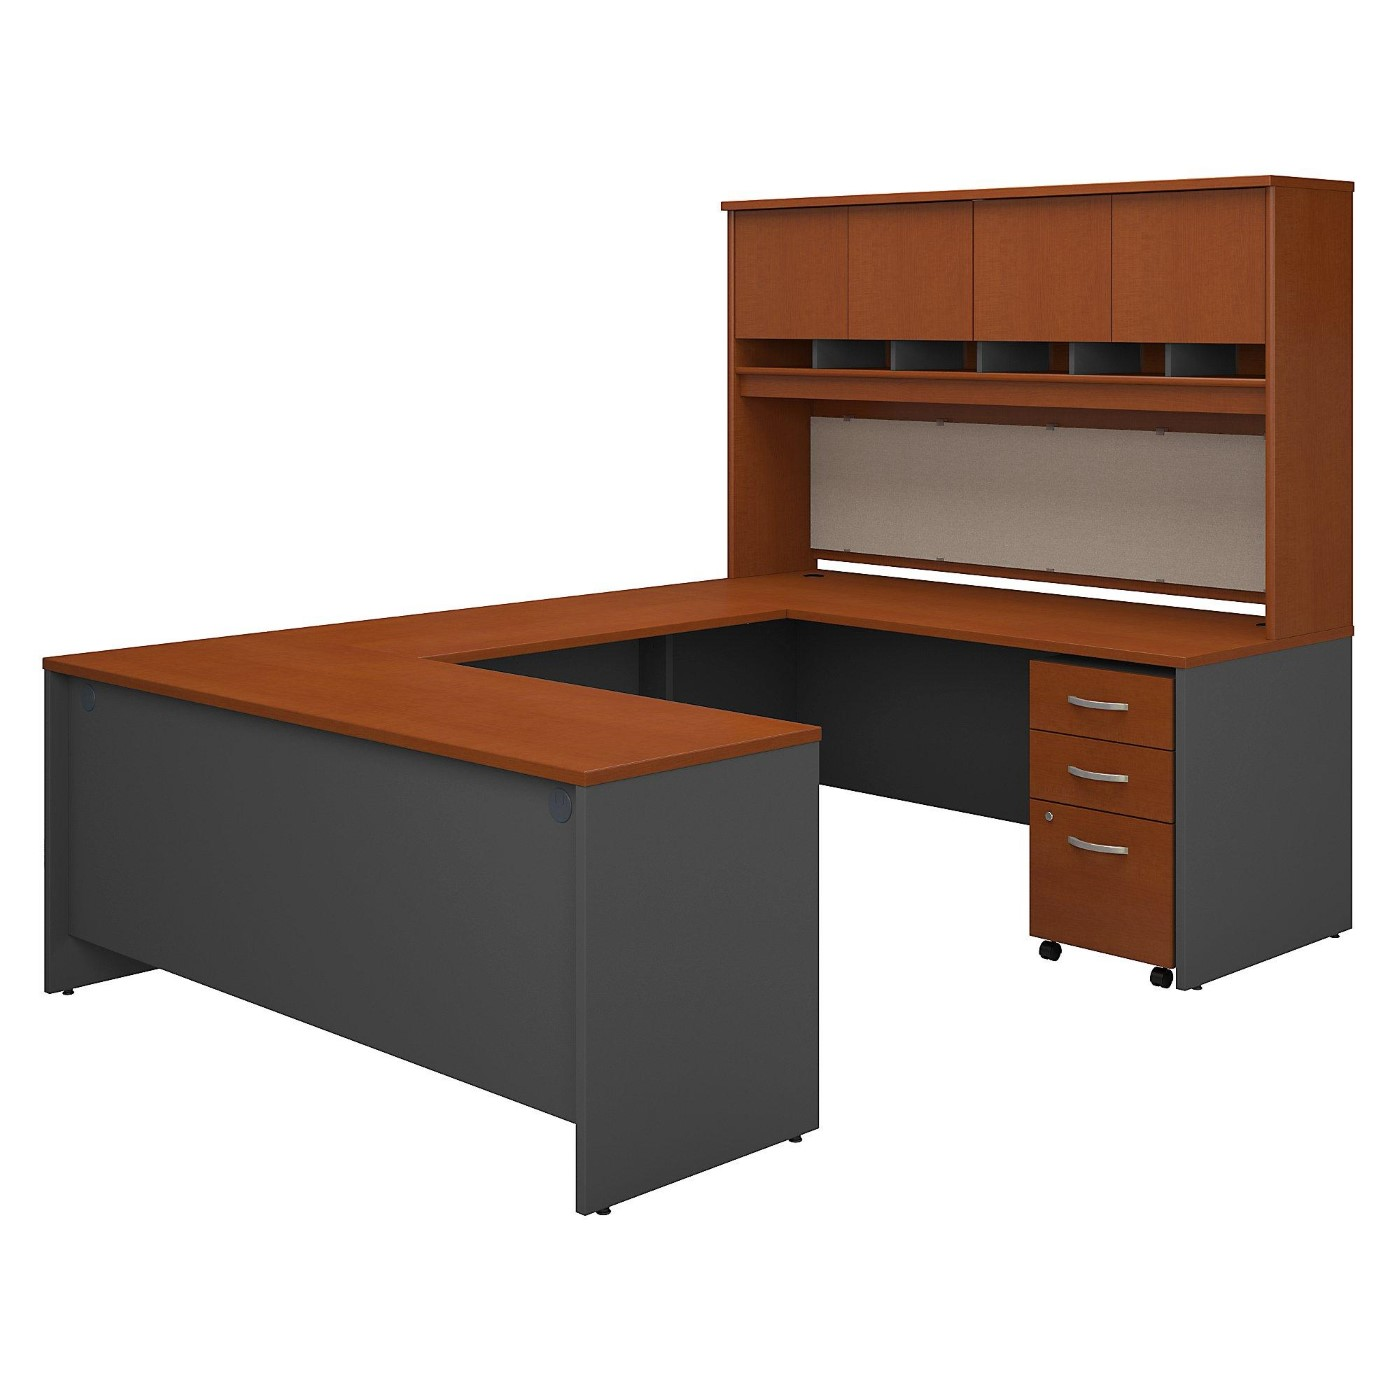 <font color=#c60><b>BUSH BUSINESS FURNITURE SERIES C 72W U SHAPED DESK WITH HUTCH AND STORAGE. FREE SHIPPING</font></b></font>